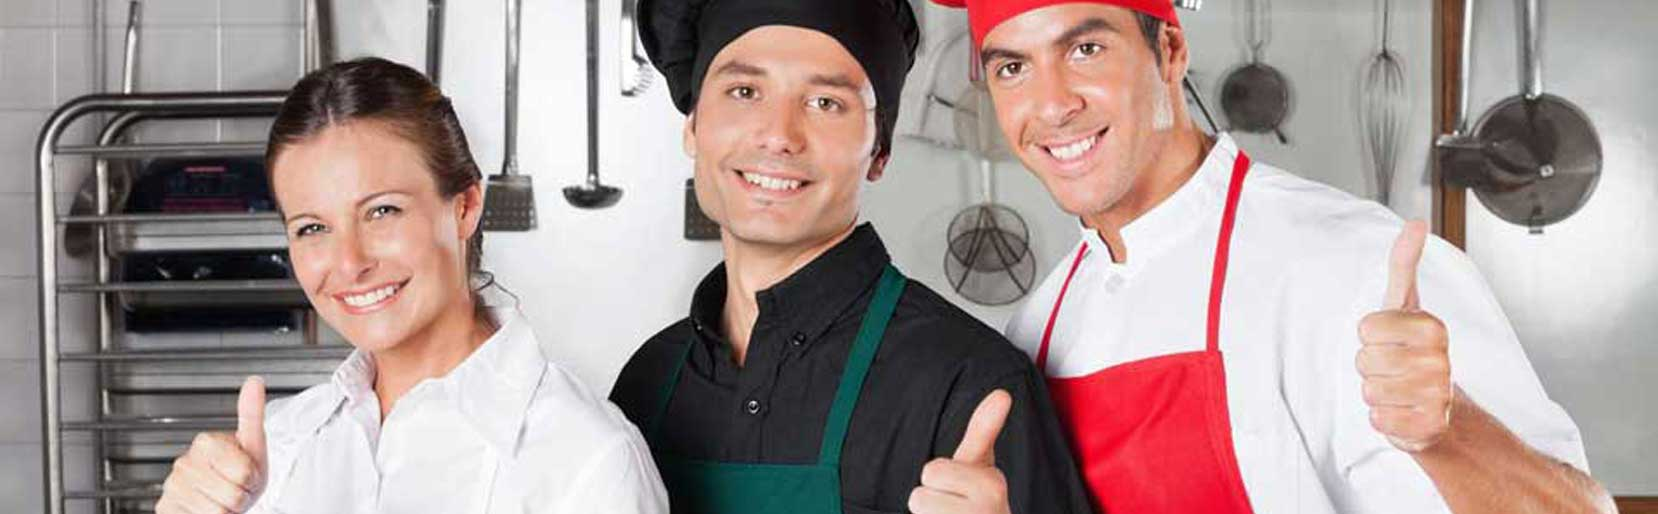 FAQ Manager Course and Exam - Food Safety Training CA & AZ